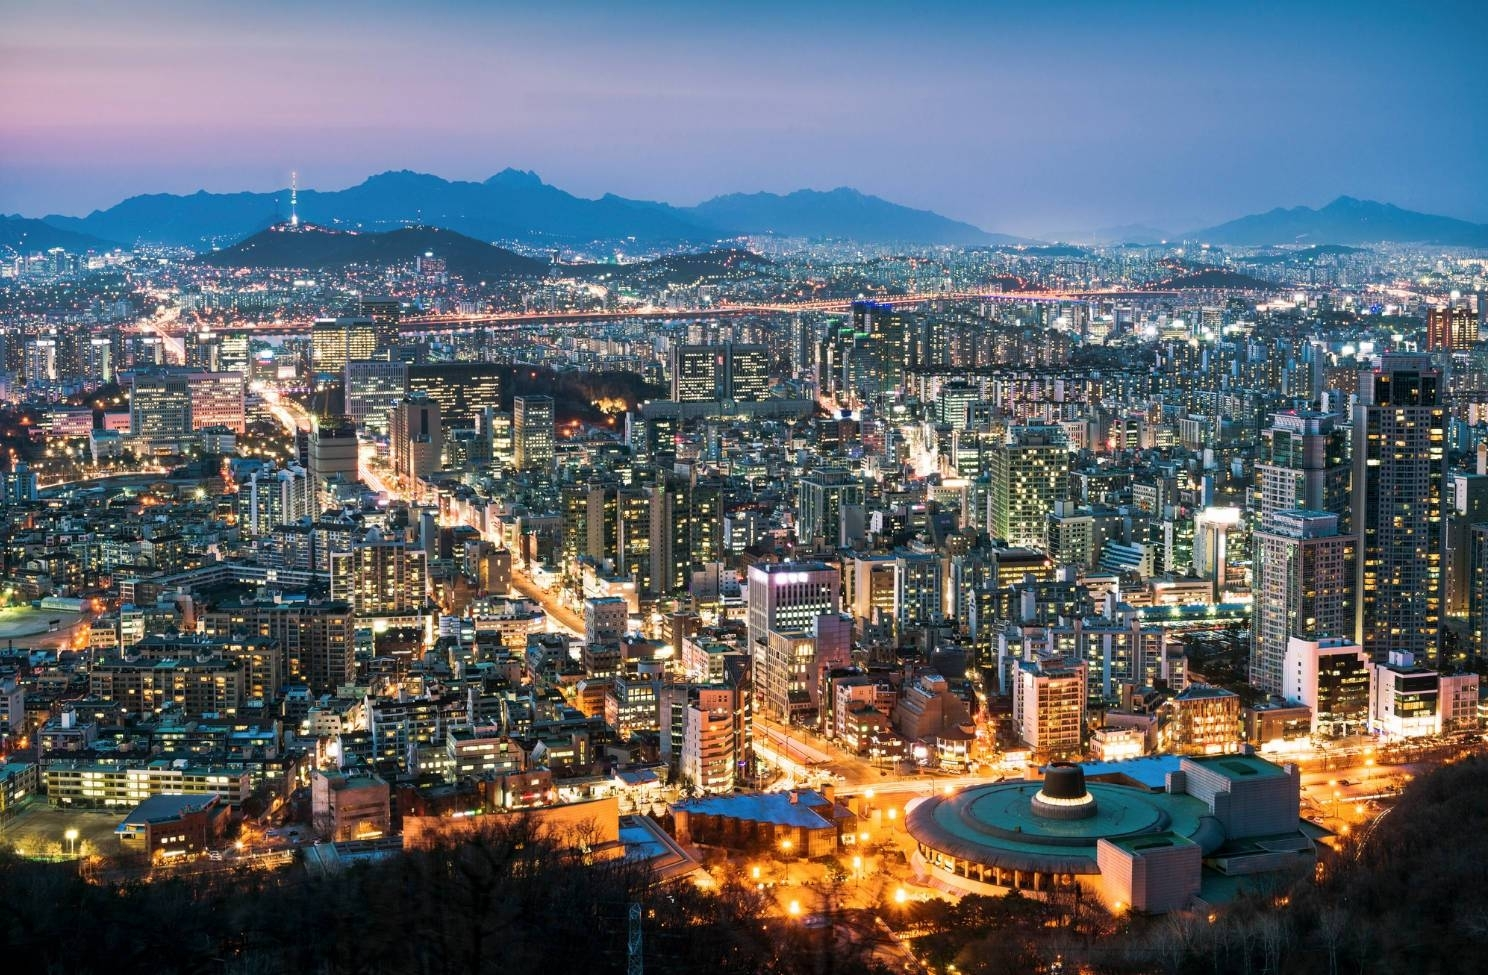 seoulnightview